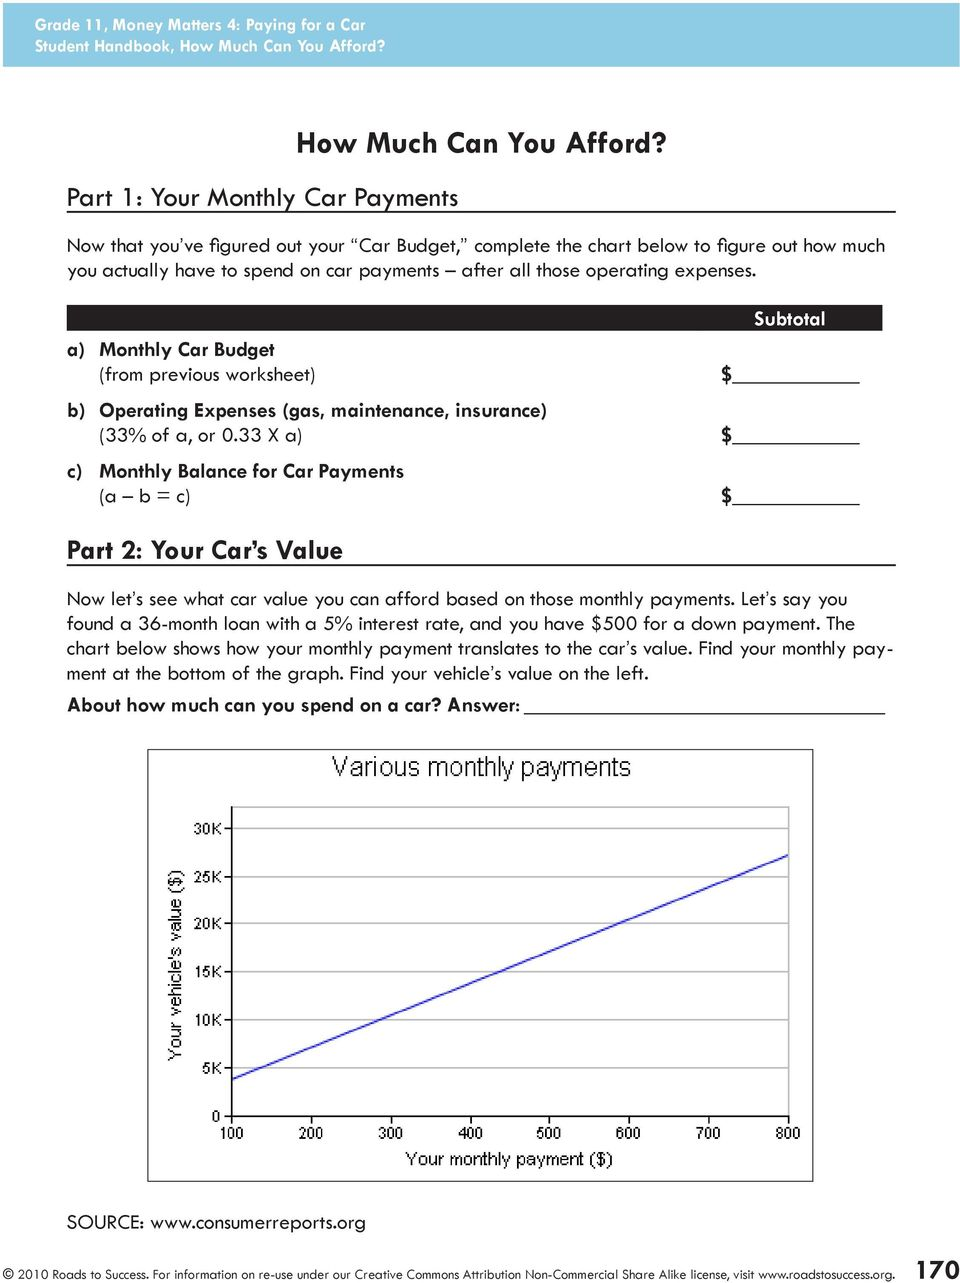 a) Monthly Car Budget (from previous worksheet) Subtotal $ b) Operating Expenses (gas, maintenance, insurance) (33% of a, or 0.